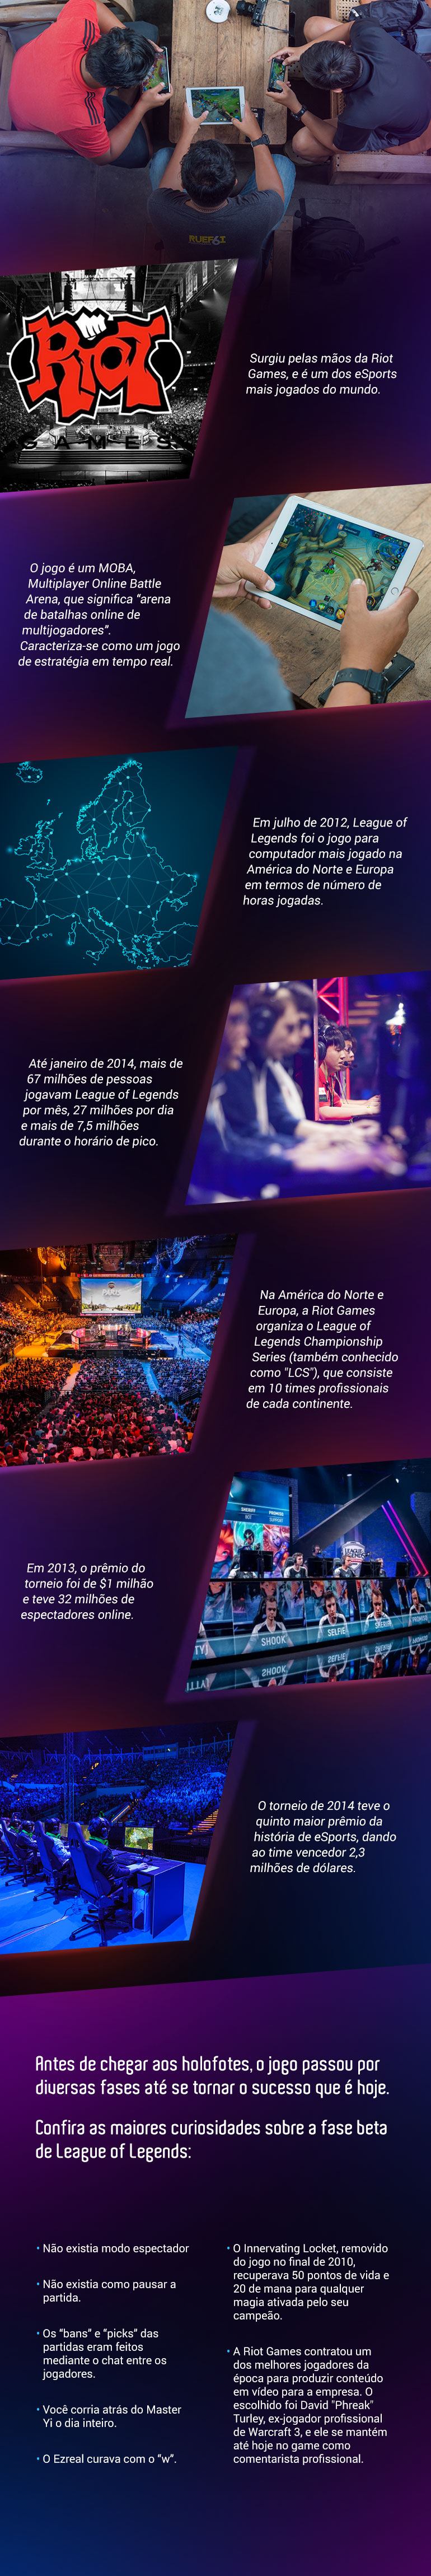 O que é e como surgiu o League of Legends?